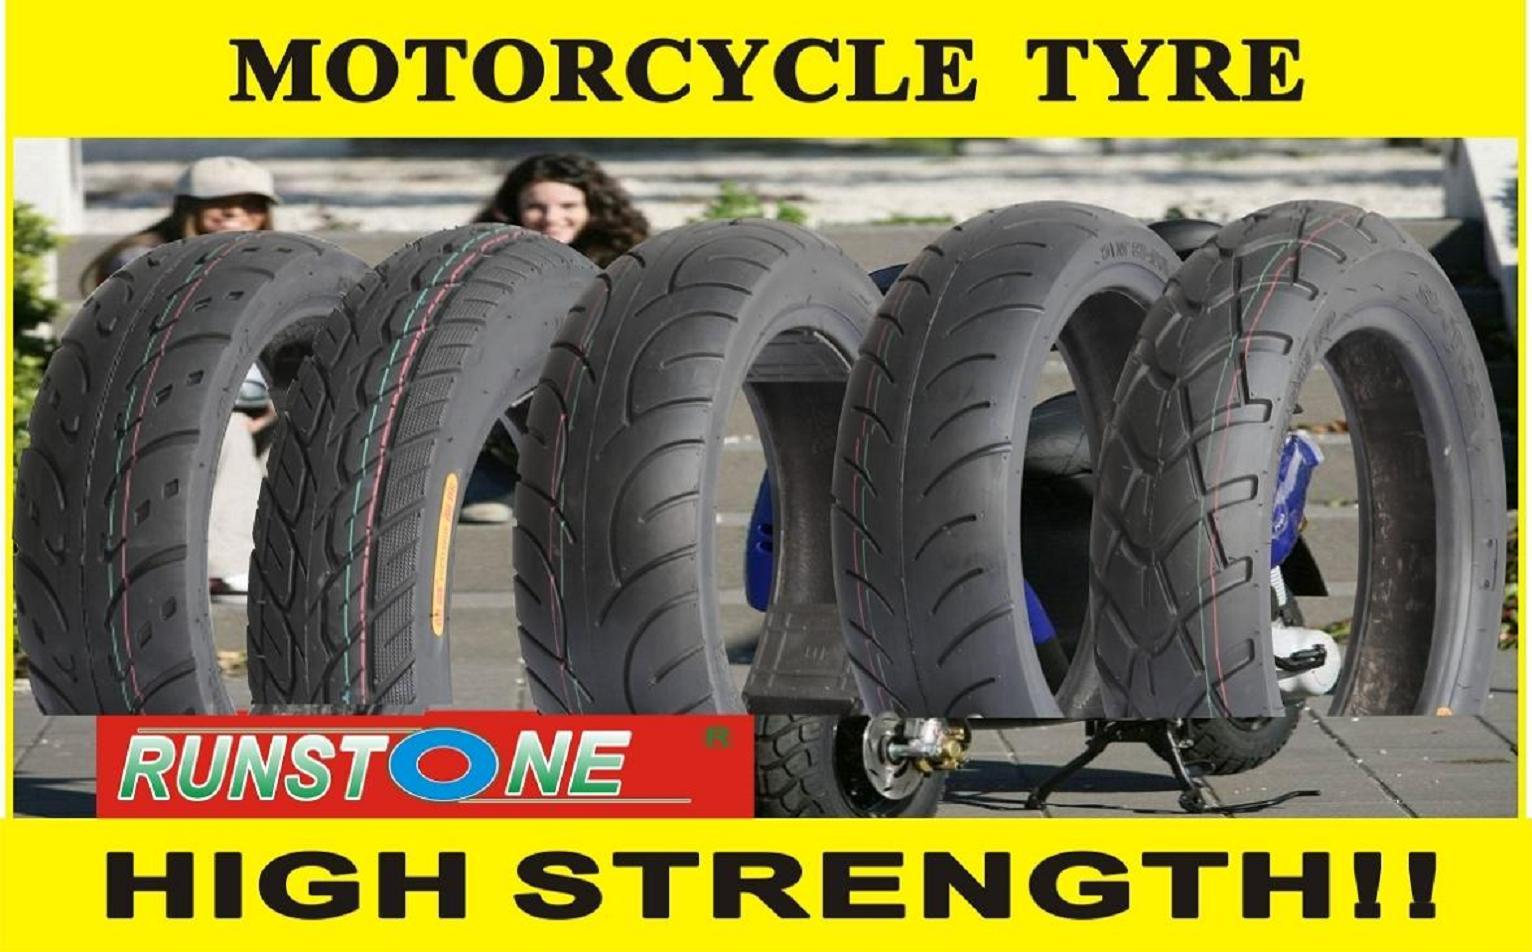 Scooter Tyre/Scooter Tires/Tubeless Tires /Scooter Tubeless Tires (120/70-12 130/60-13)